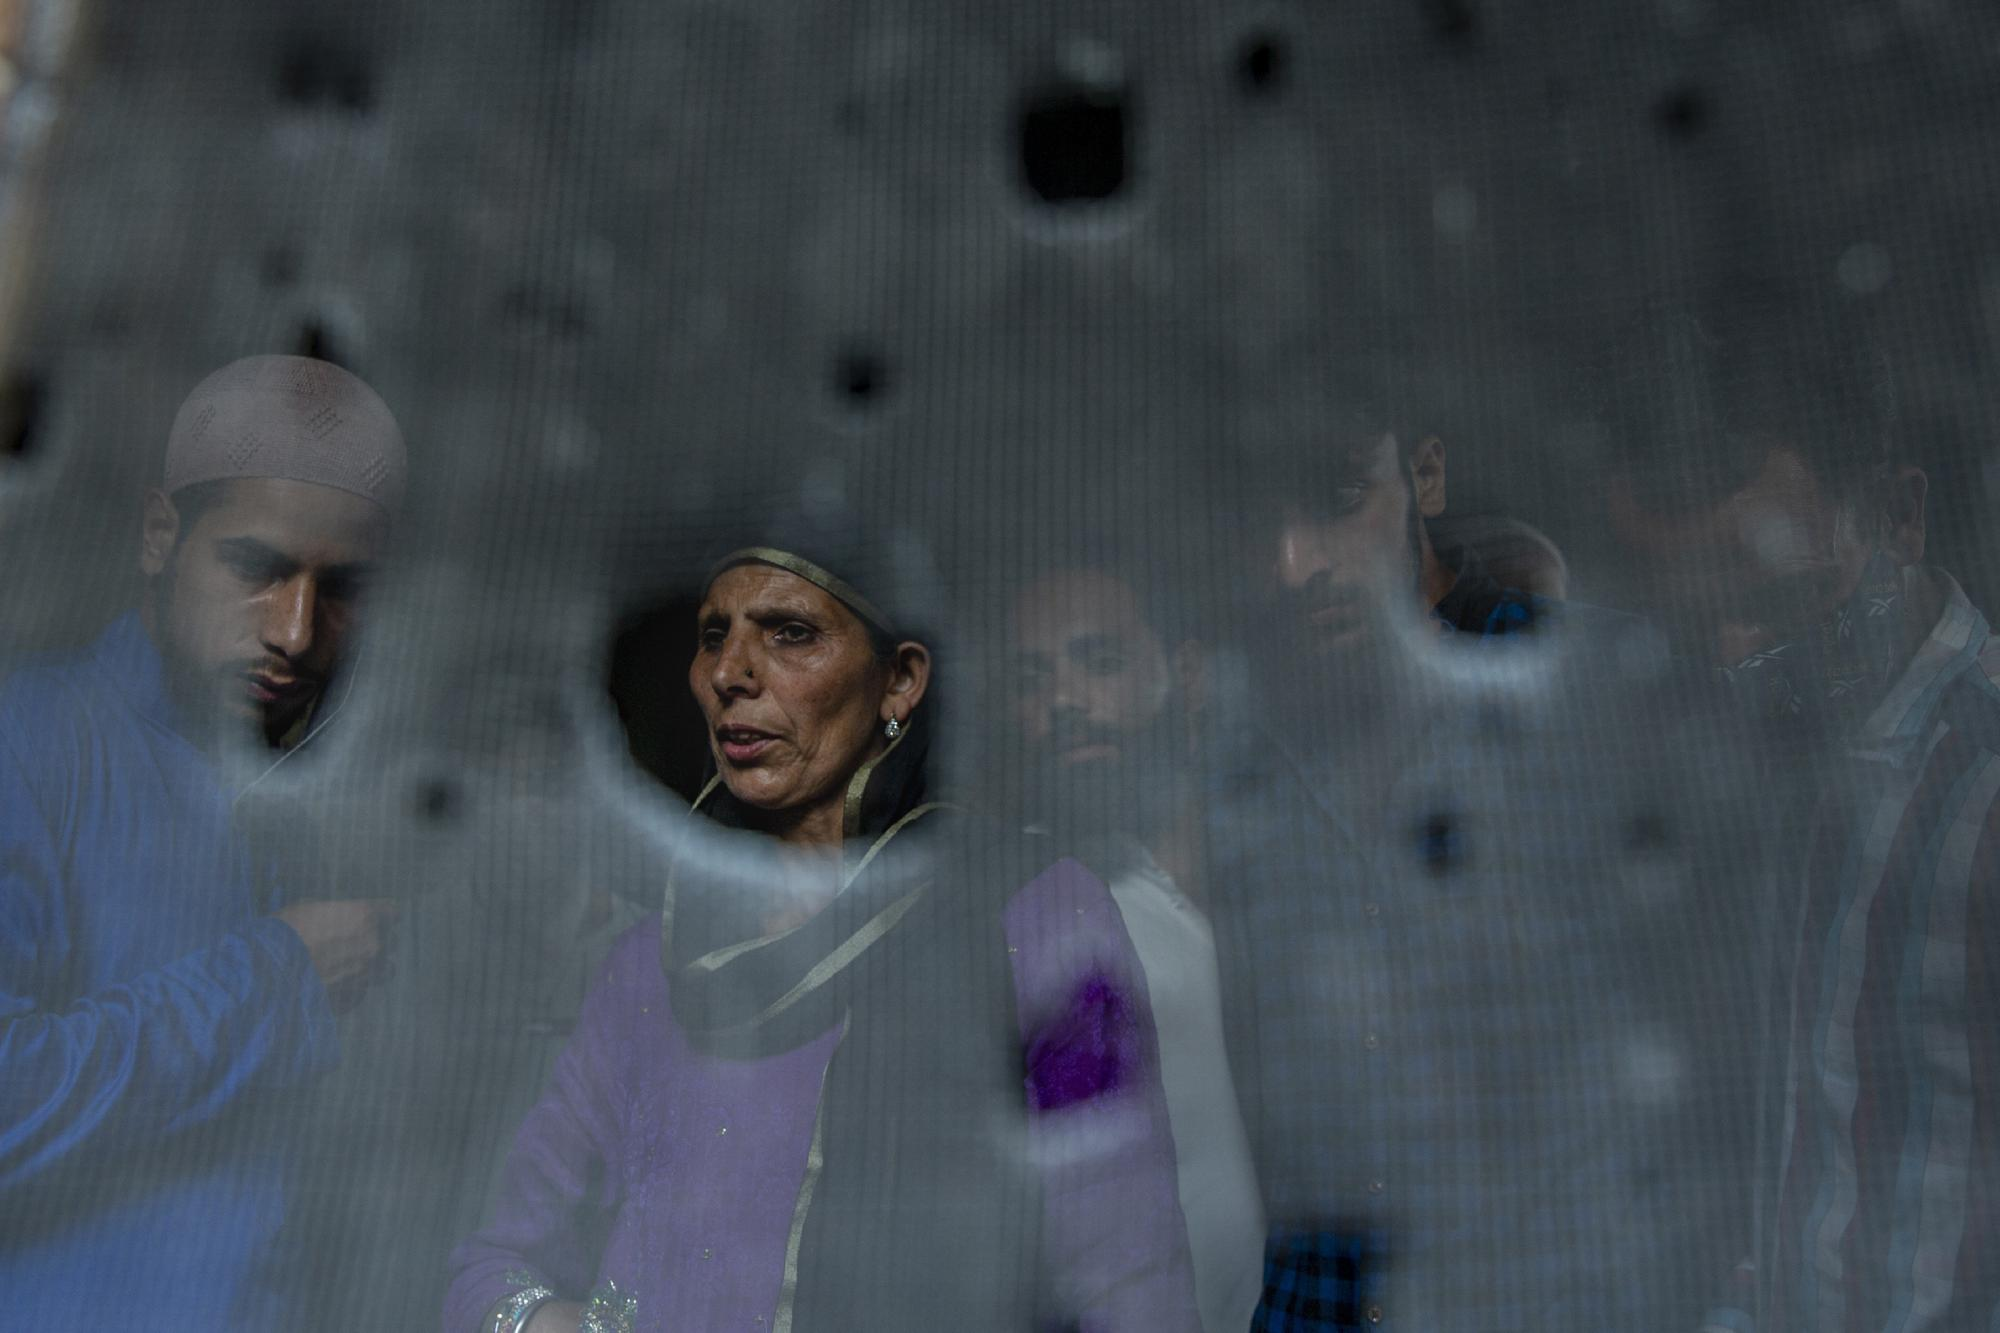 Kashmiri villagers are seen through the bullet ridden iron mesh of a window of a home where suspected rebels were taking refuge, after a gunfight in Pulwama, south of Srinagar, Indian controlled Kashmir, Friday, July 2, 2021. Five suspected rebels and an army soldier were killed in a gunfight in Indian-controlled Kashmir on Friday, officials said, as violence in the disputed region has increased in recent weeks. (AP Photo/ Dar Yasin)